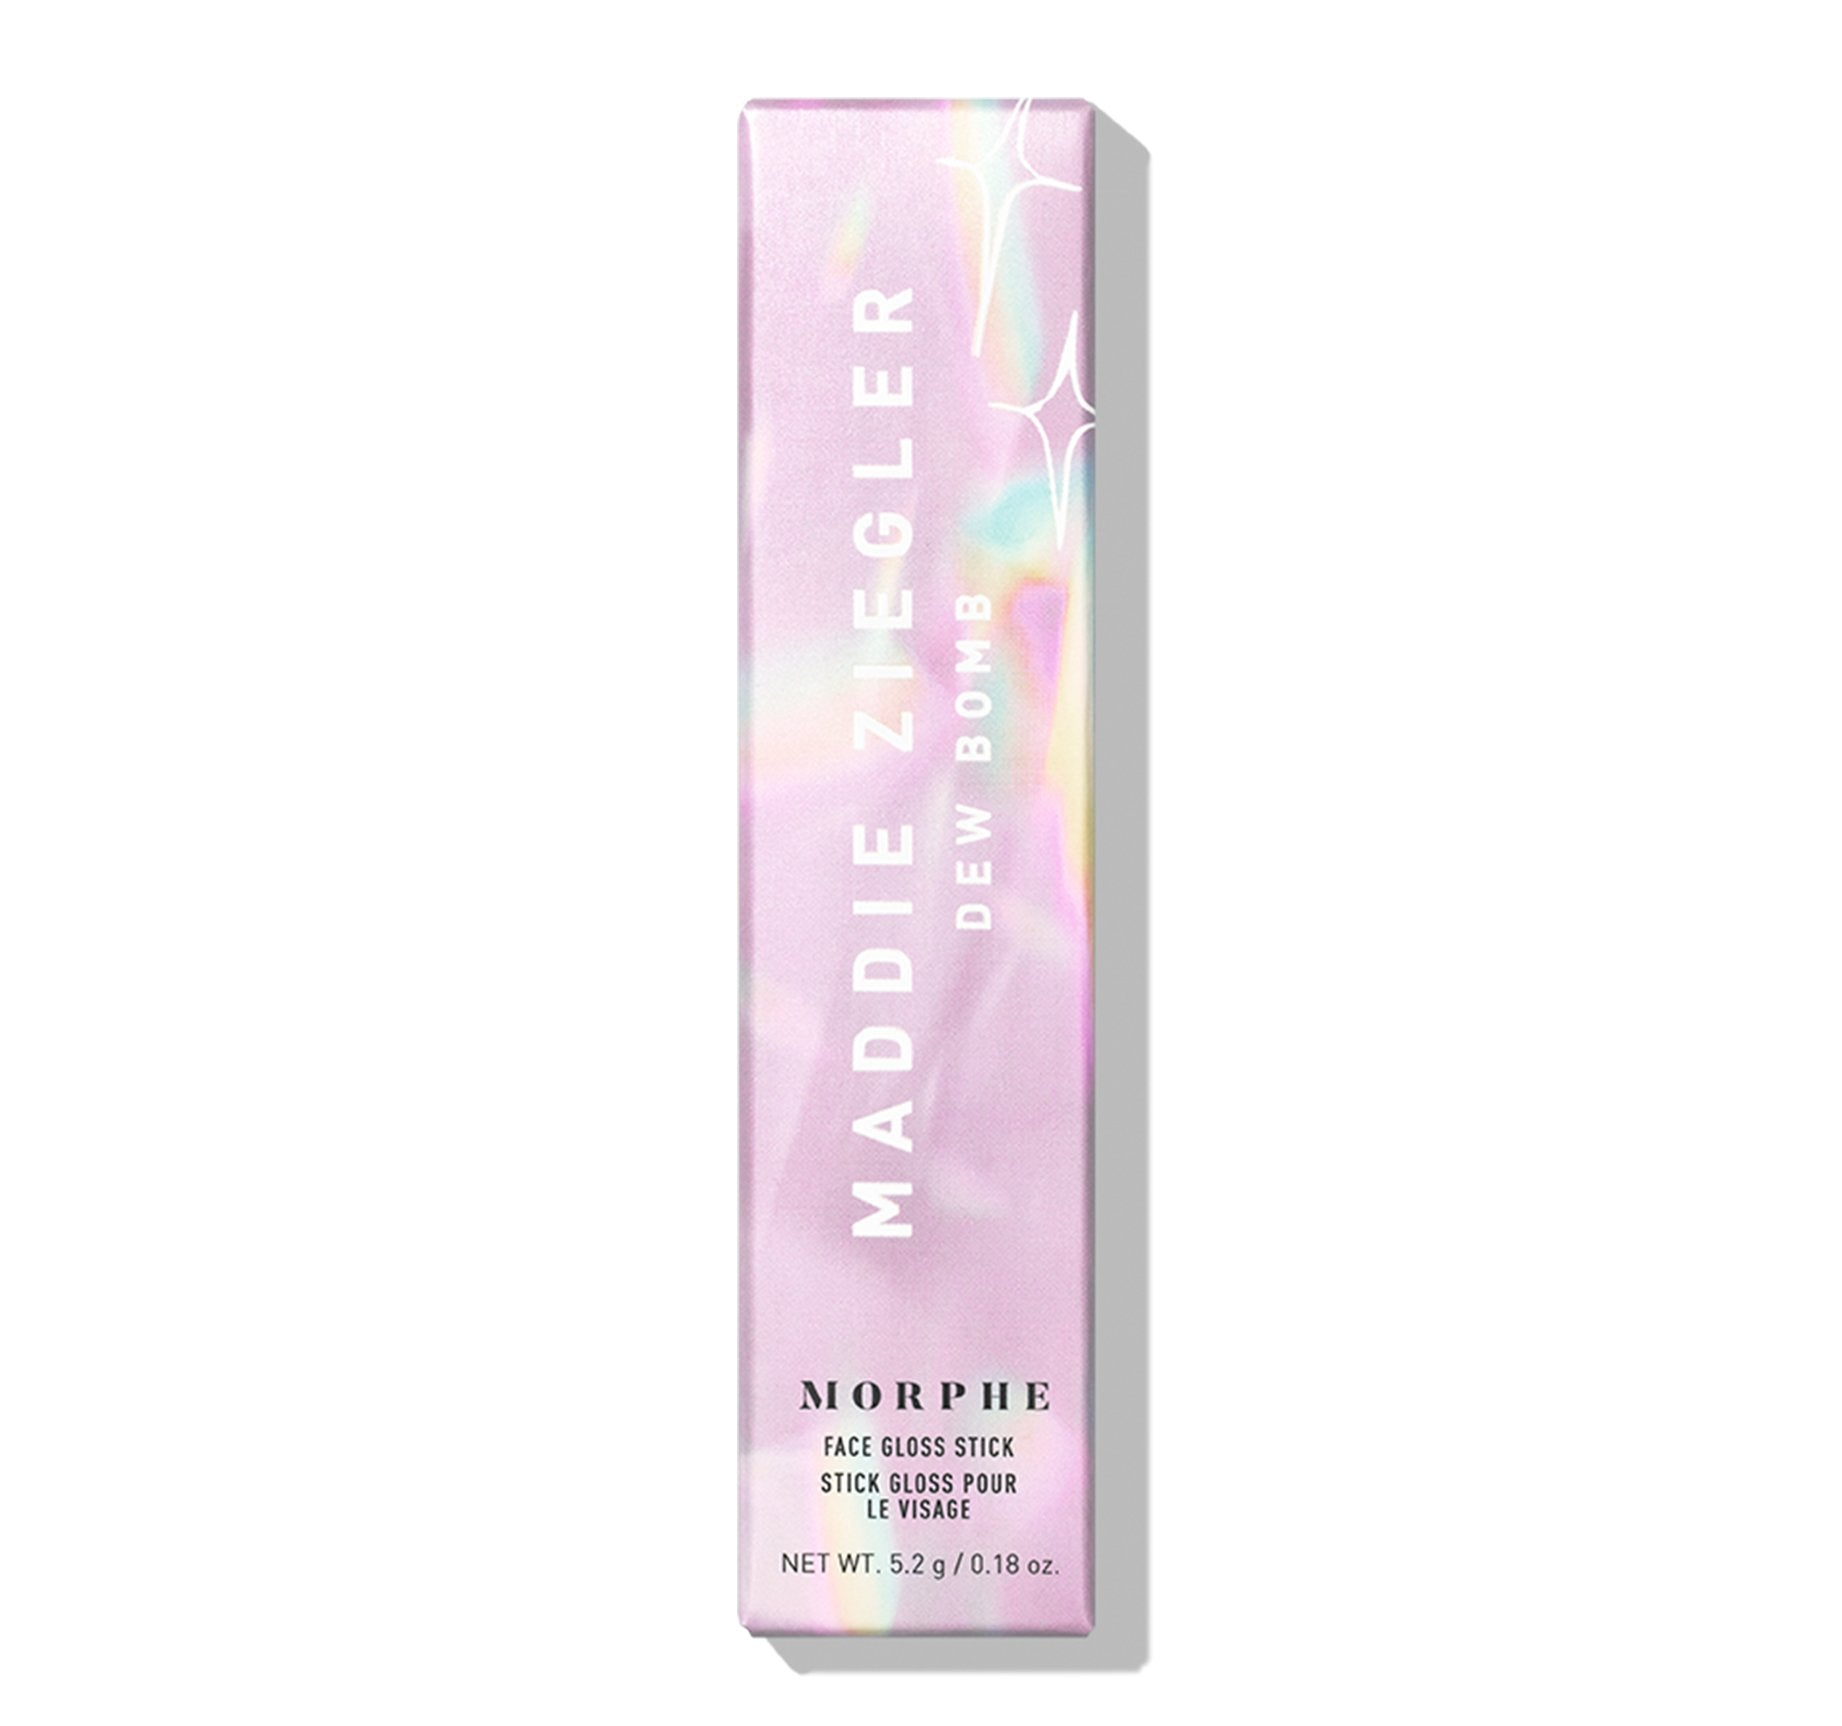 Dew Bomb Face Gloss Morphe X Maddie Ziegler Main event with mmmmitchell & daisy maskell. morphe x maddie ziegler dew bomb face gloss stick